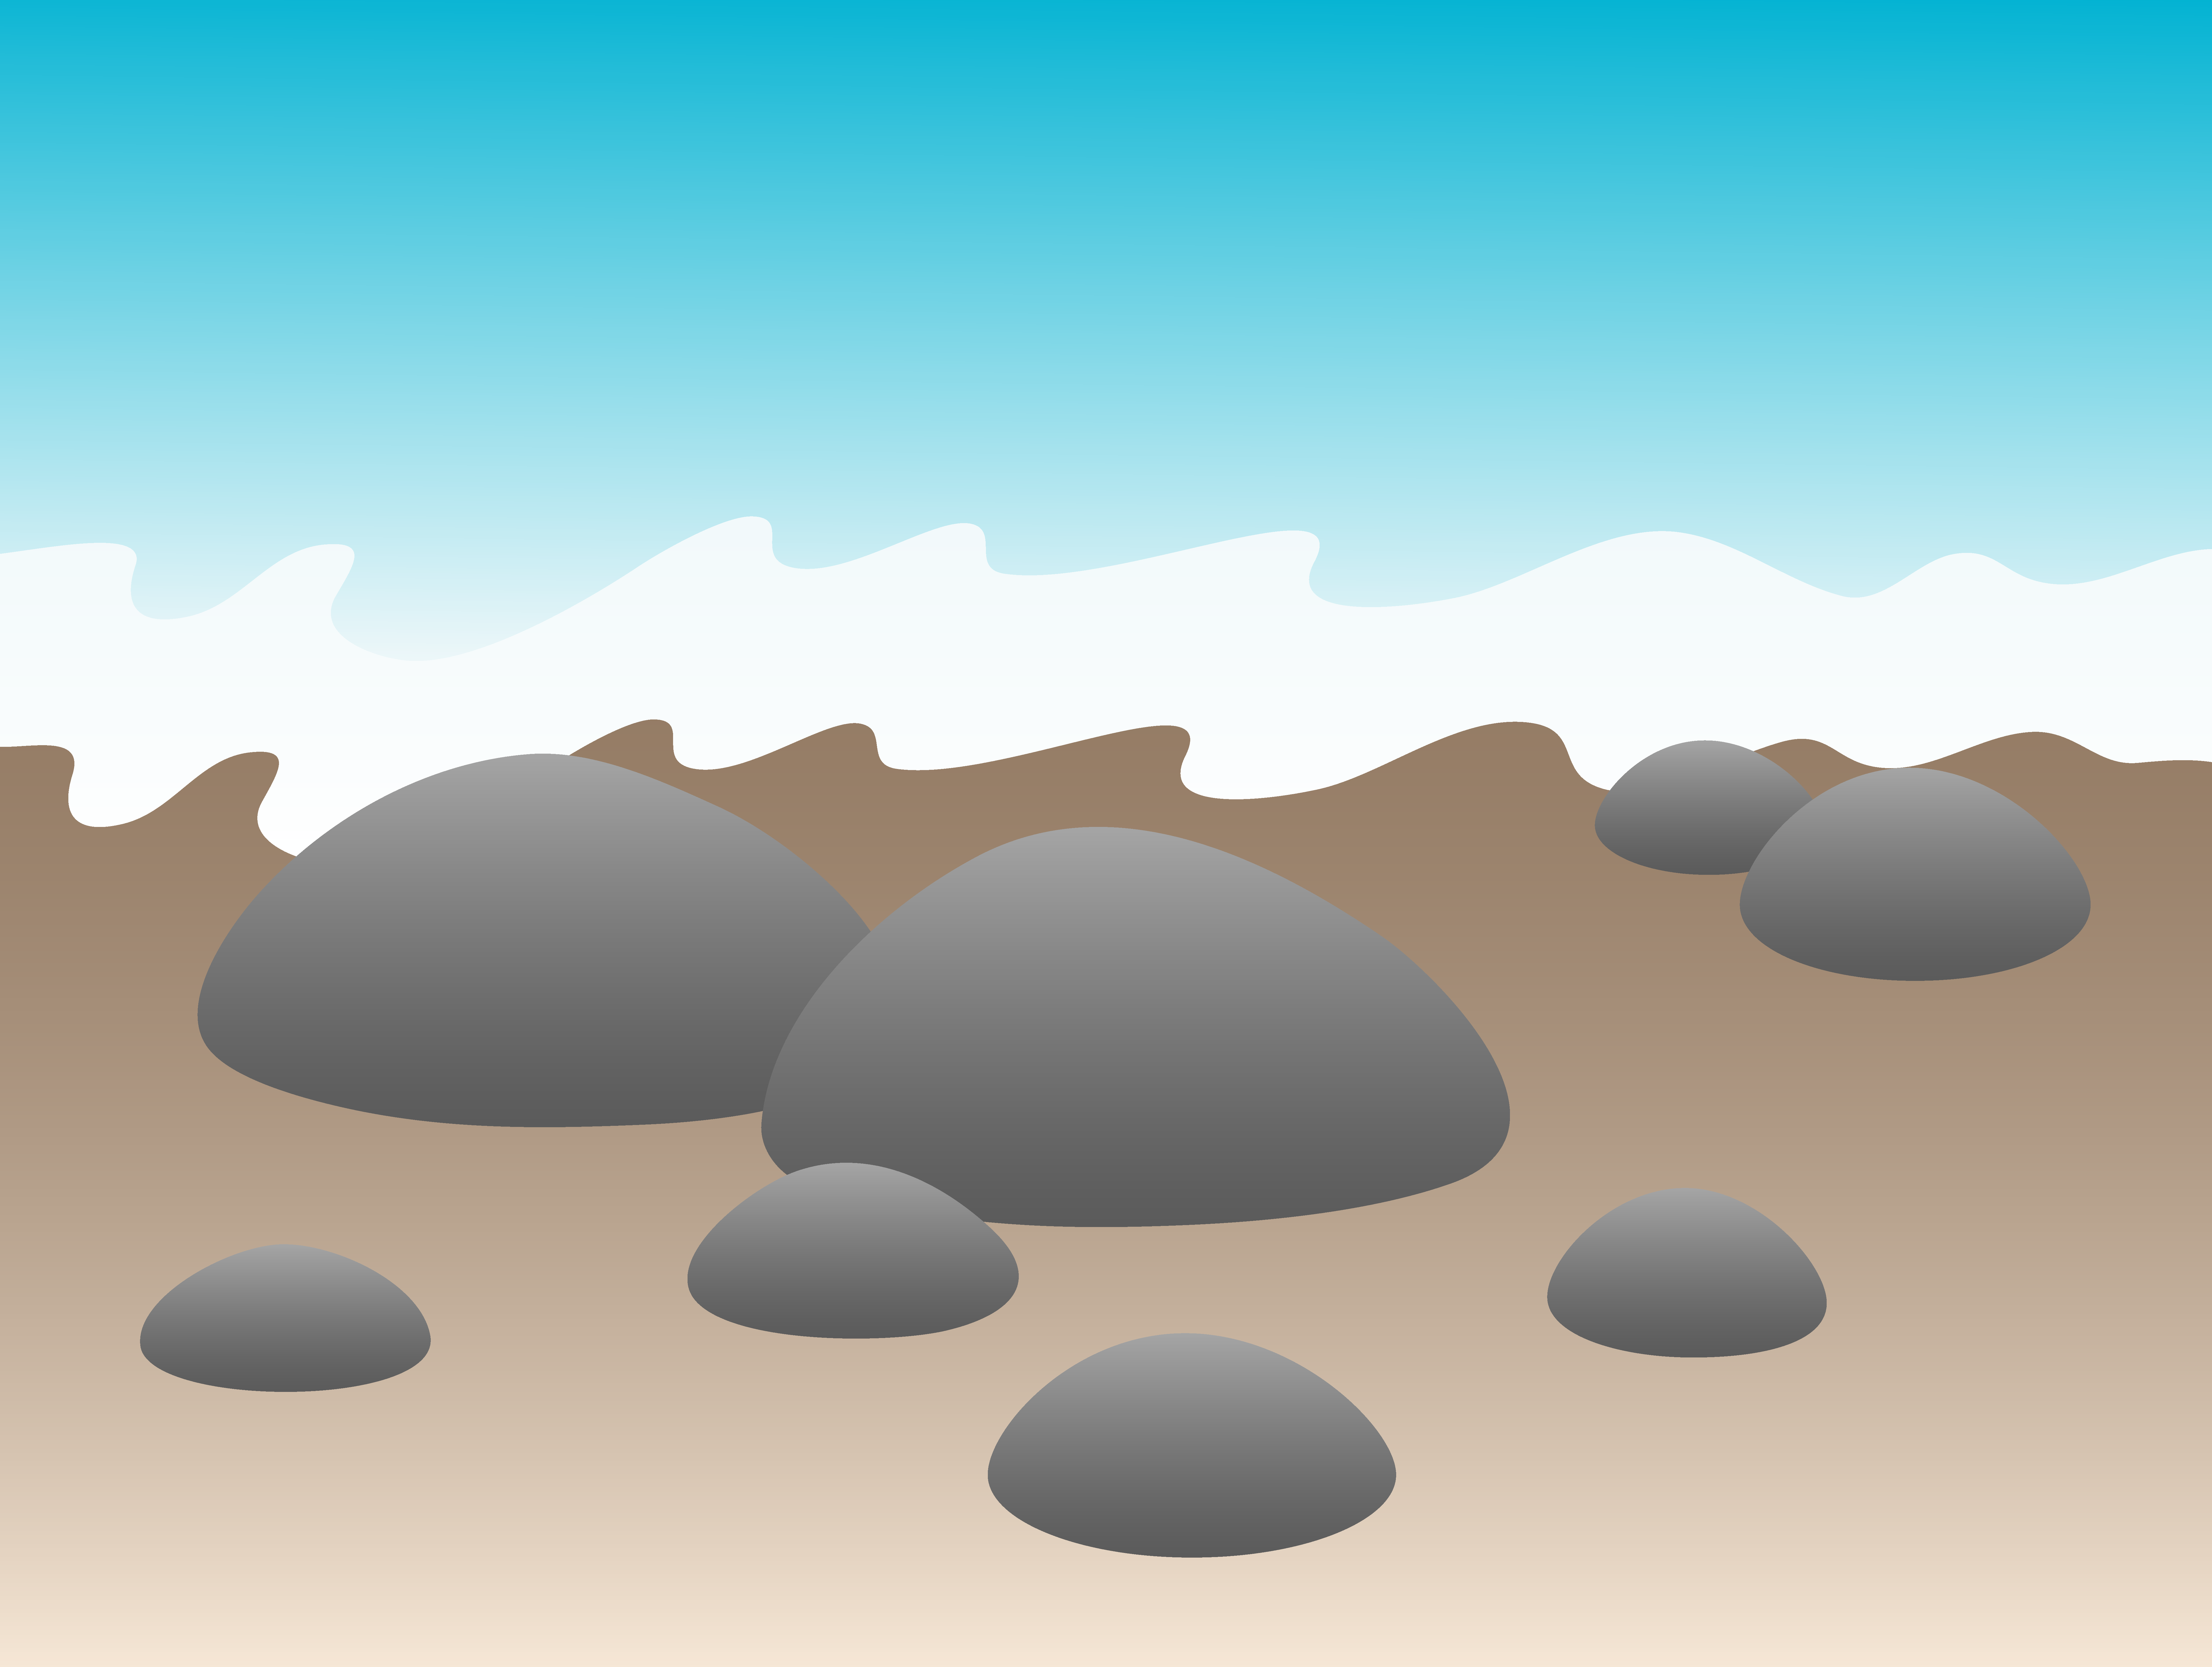 Pebbles clipart smooth stone #7